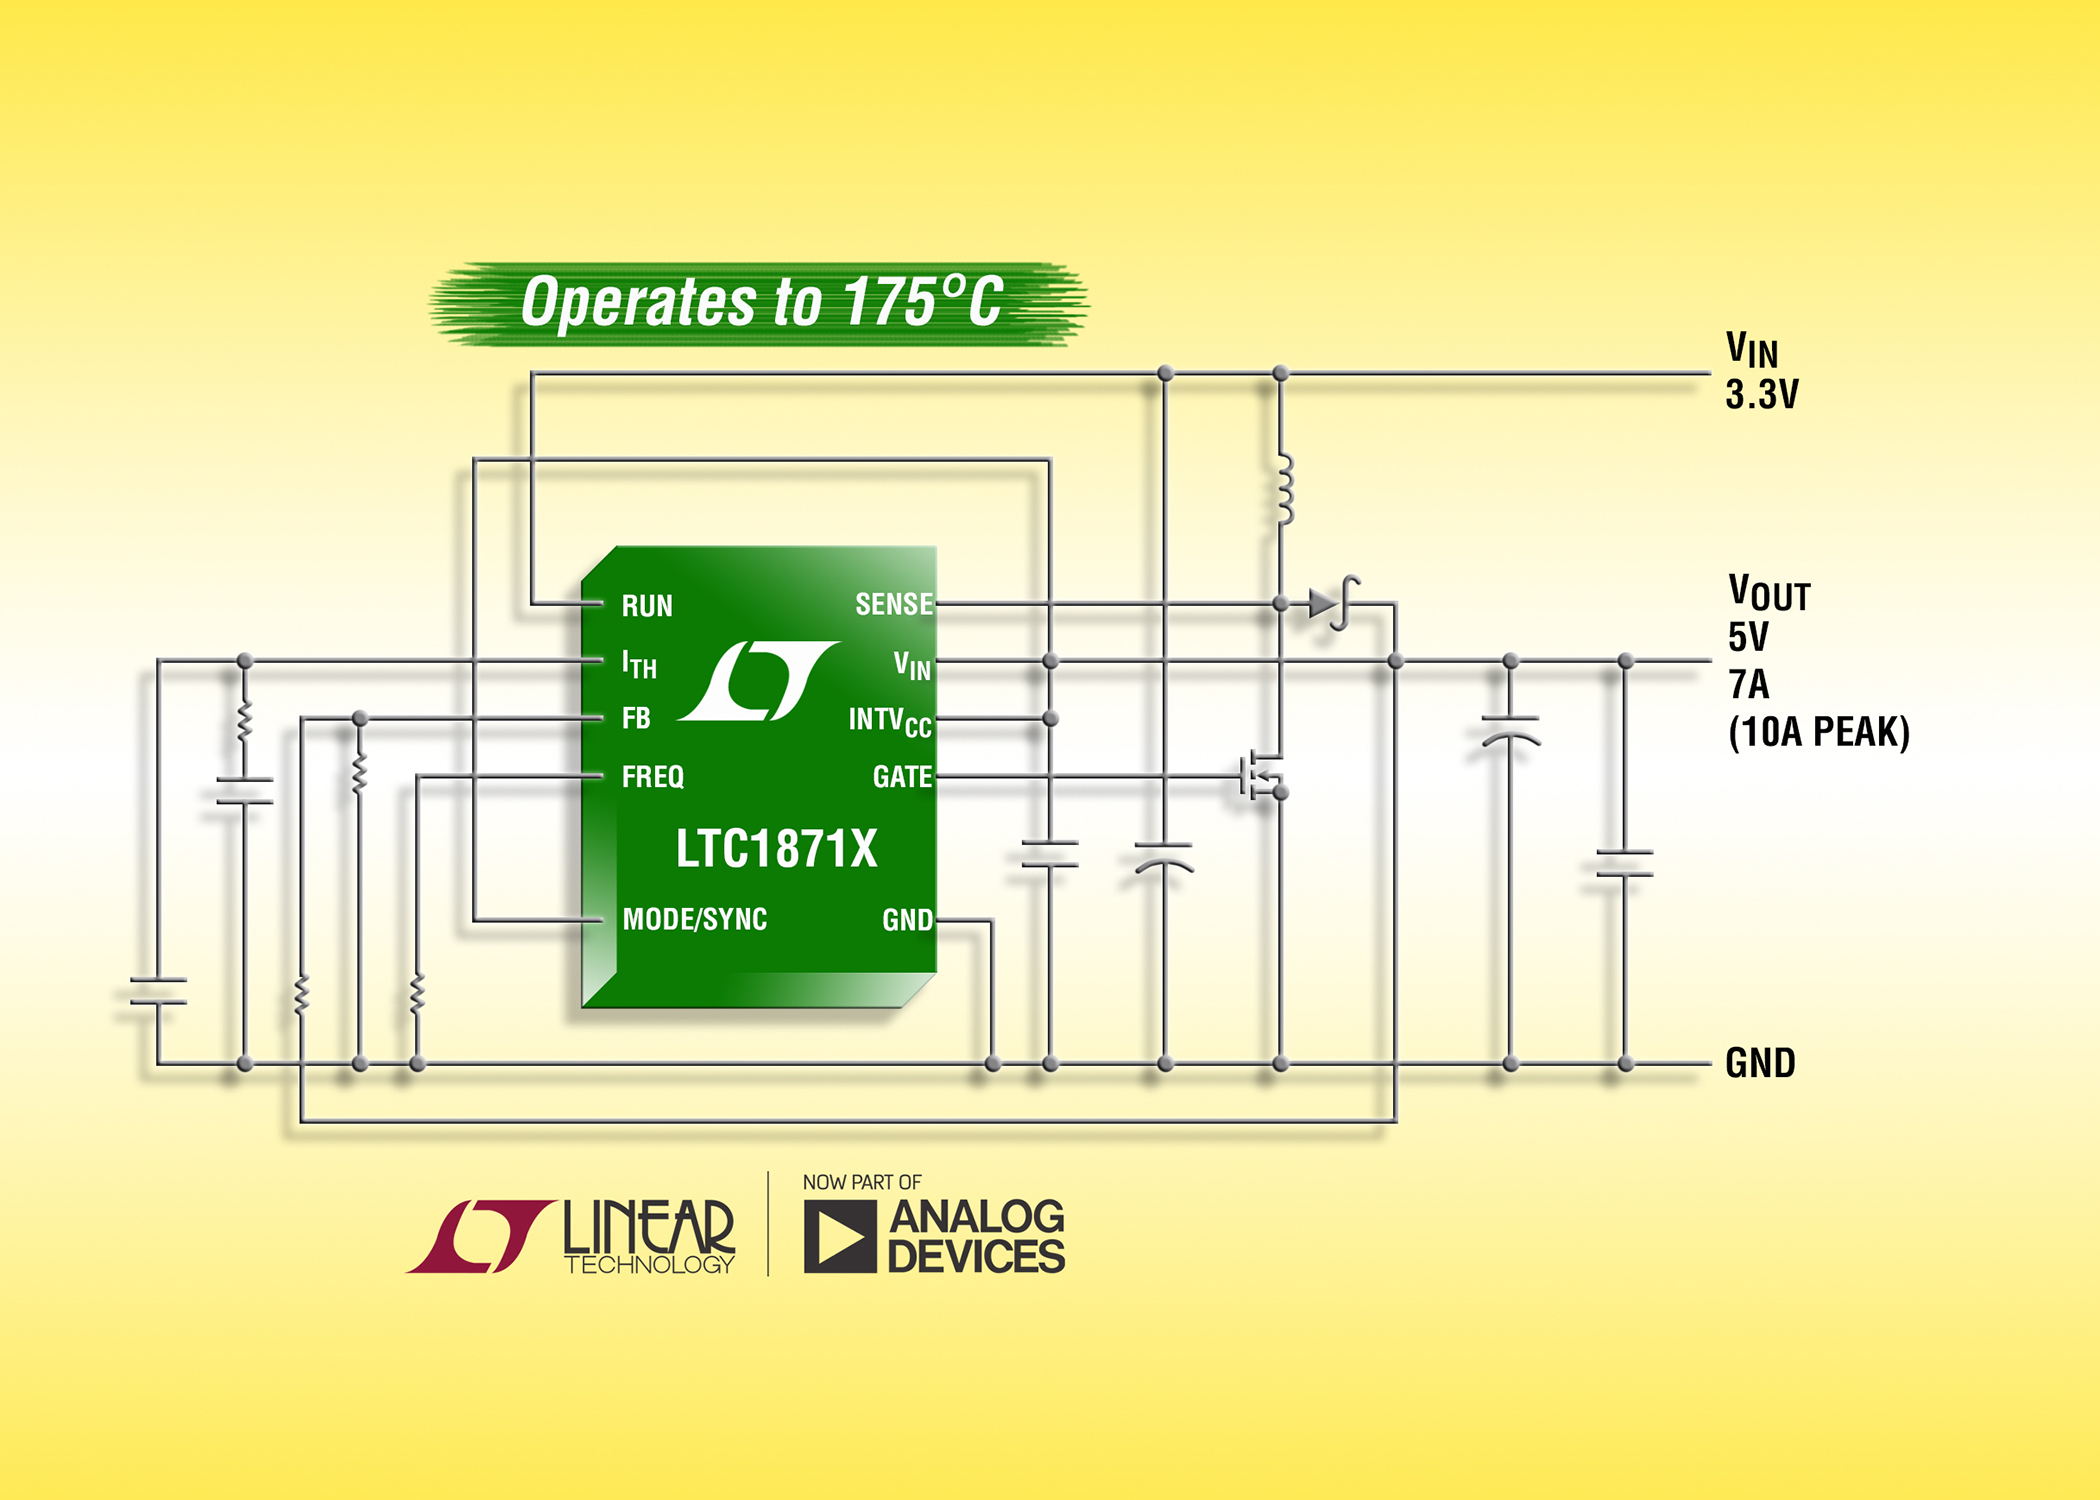 Linear Technology Uk Limited News From Escom Monolithic Synchronous Stepdown Dc Converter Boost Flyback Sepic Controller Operates Up To 175c